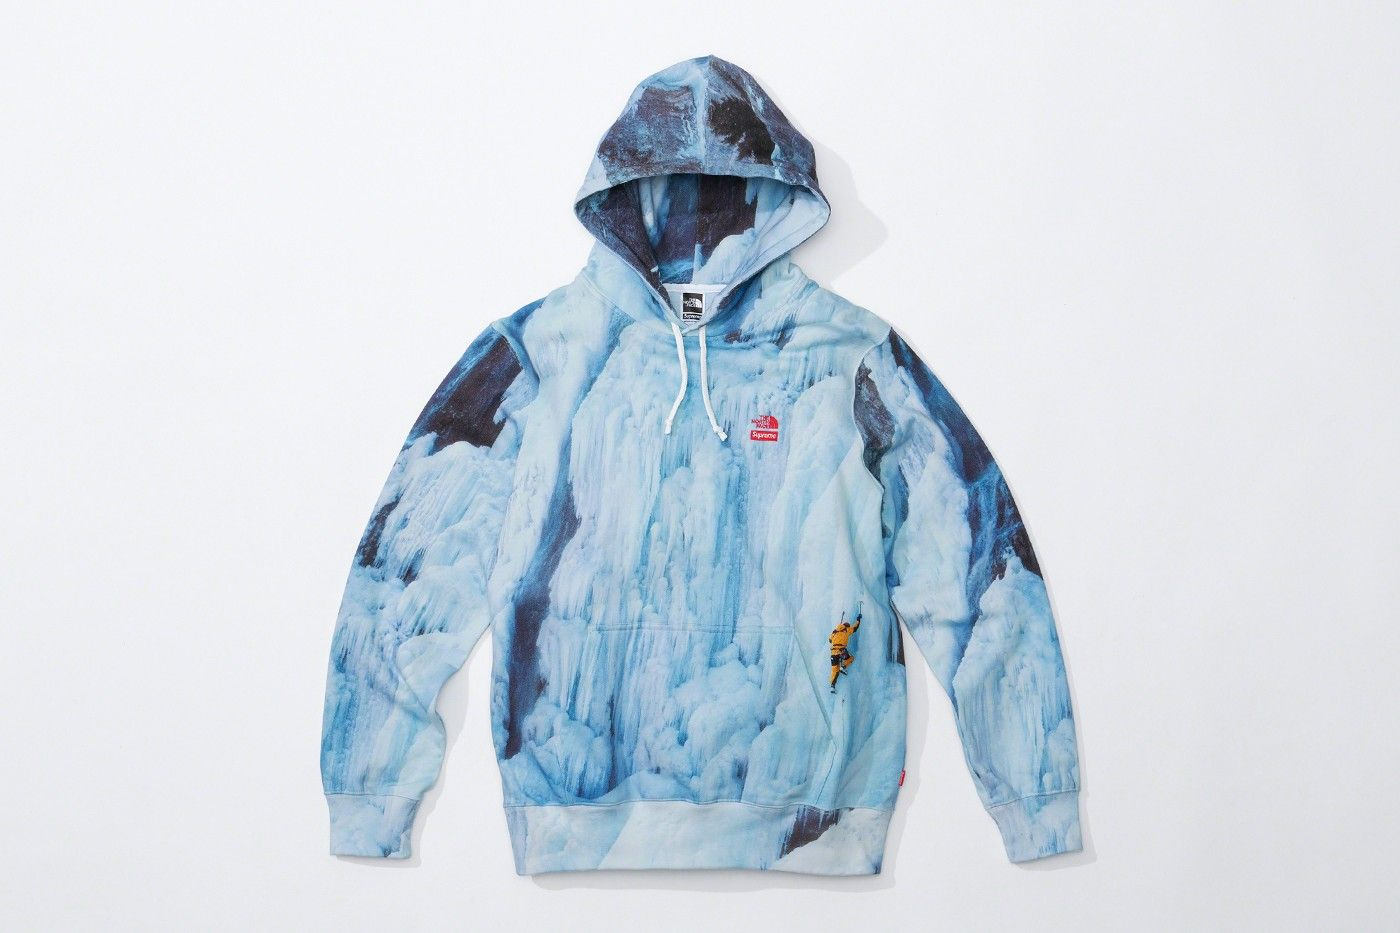 Your Supreme x TNF Camping Fit Just Got Another Level Up 50